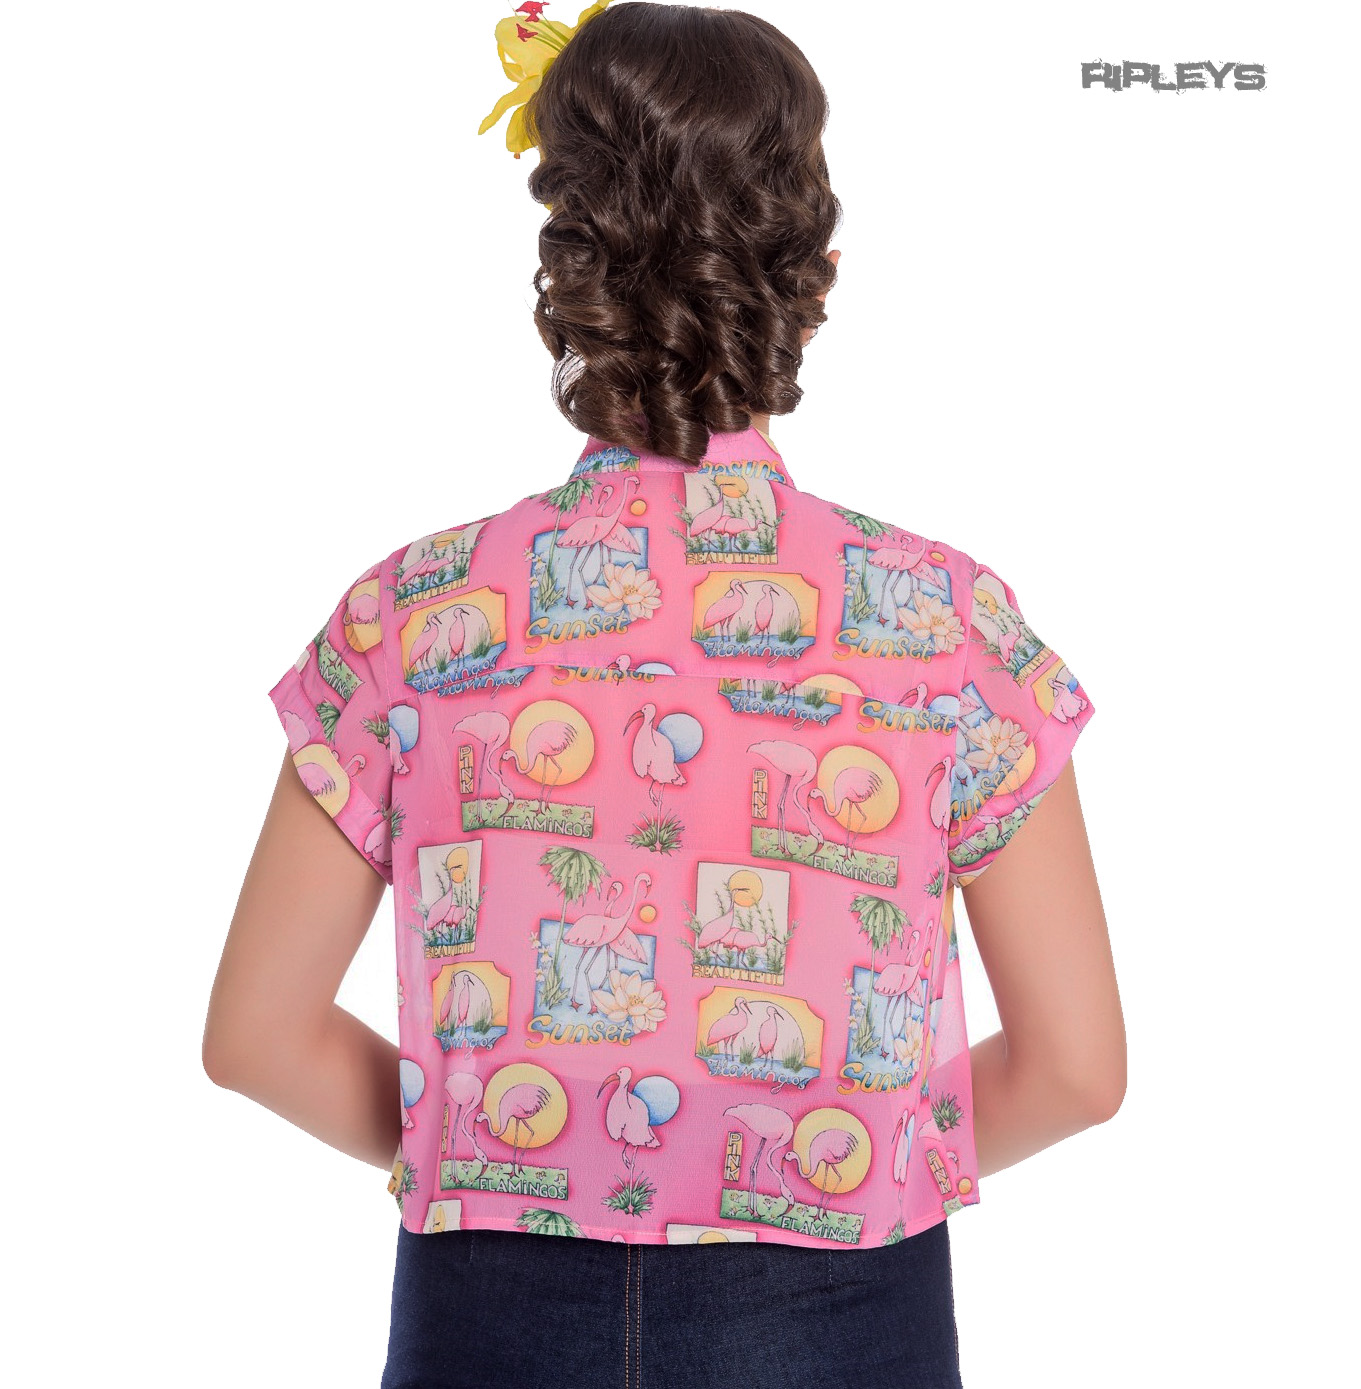 Hell-Bunny-50s-Retro-Top-Pink-Flamingo-MAXINE-Cropped-Blouse-Shirt-All-Sizes thumbnail 24